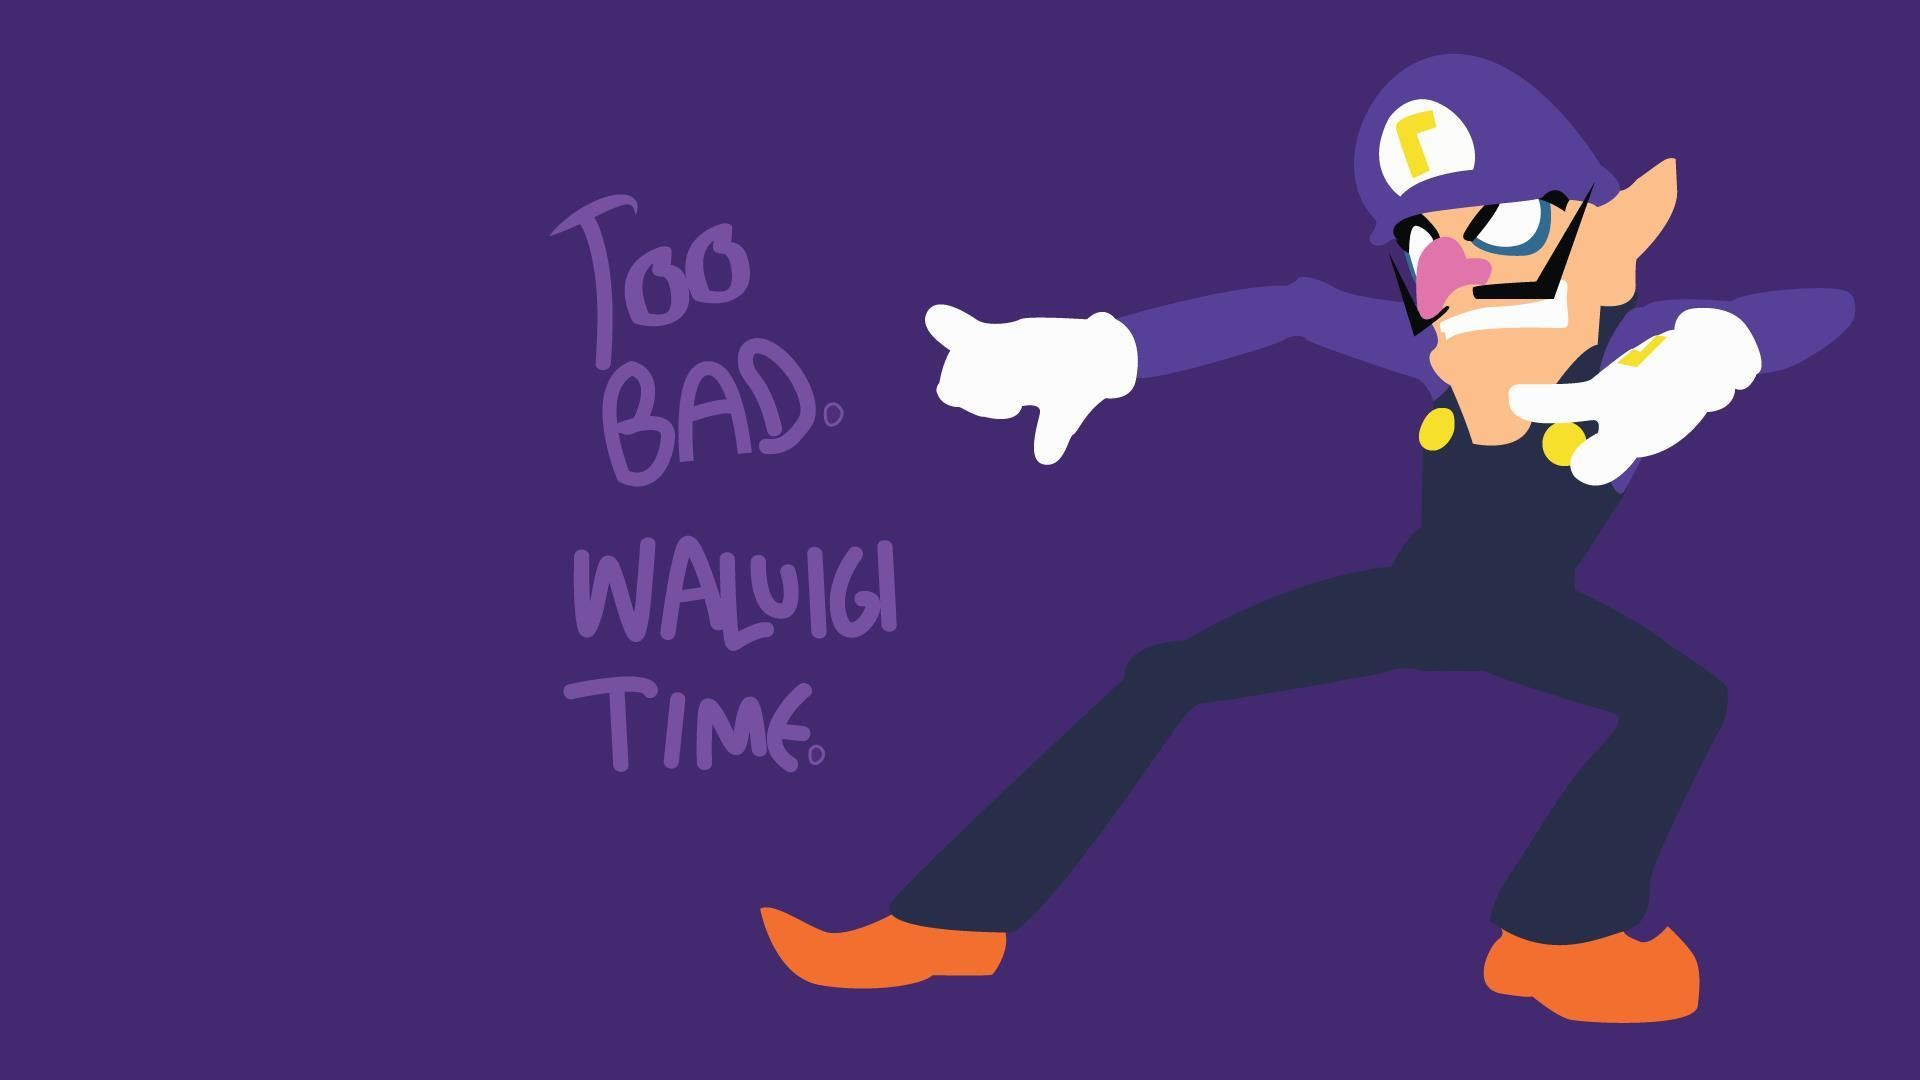 33 Waluigi Time Wallpaper R Wallpaper High Quality Wallpapers